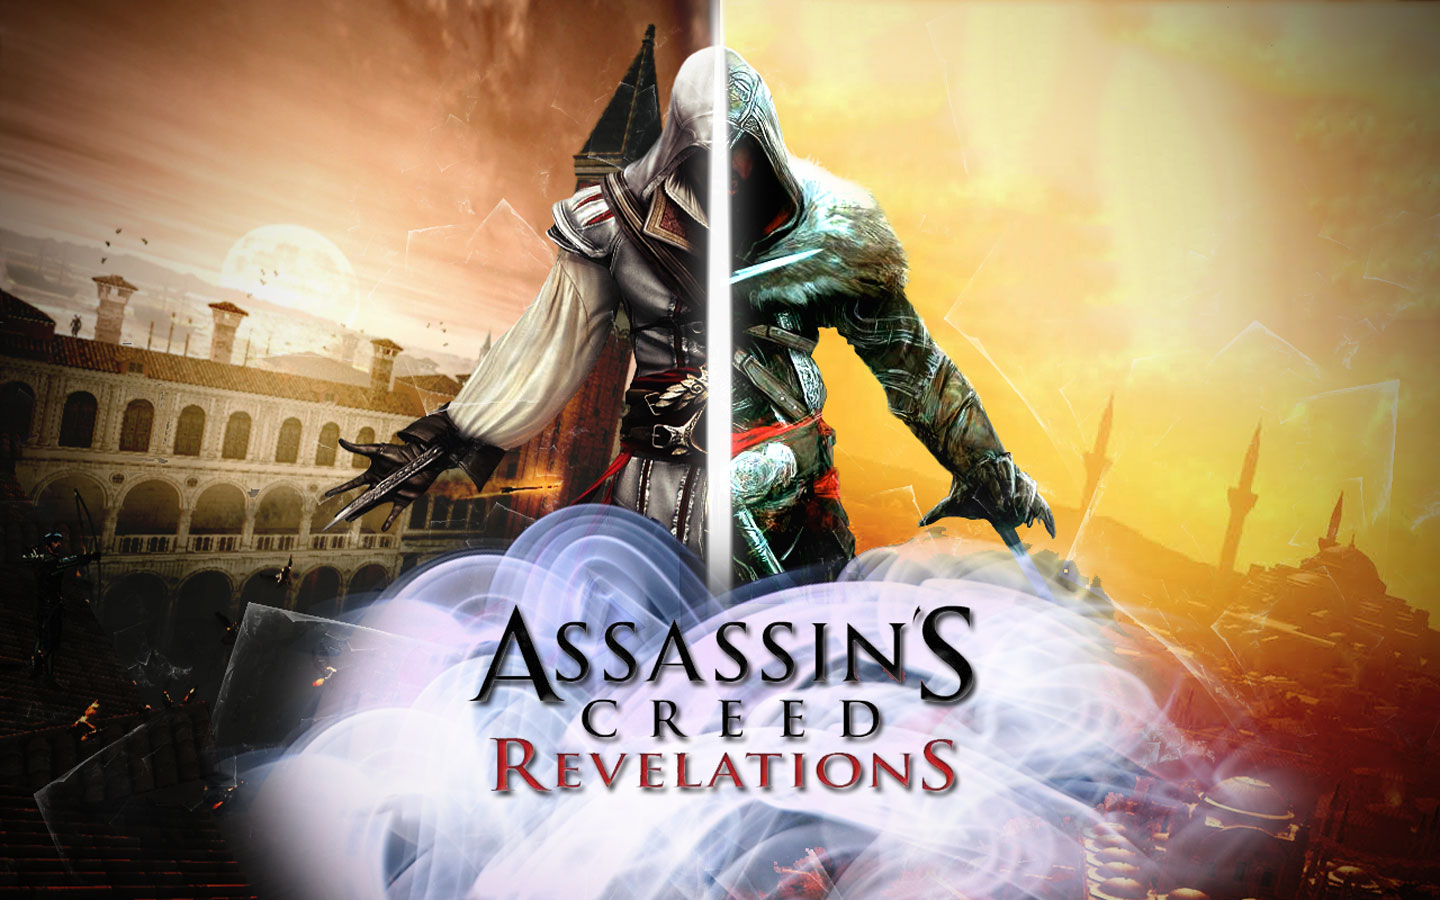 Ezio + Altair = Best Game Ever Made!!!